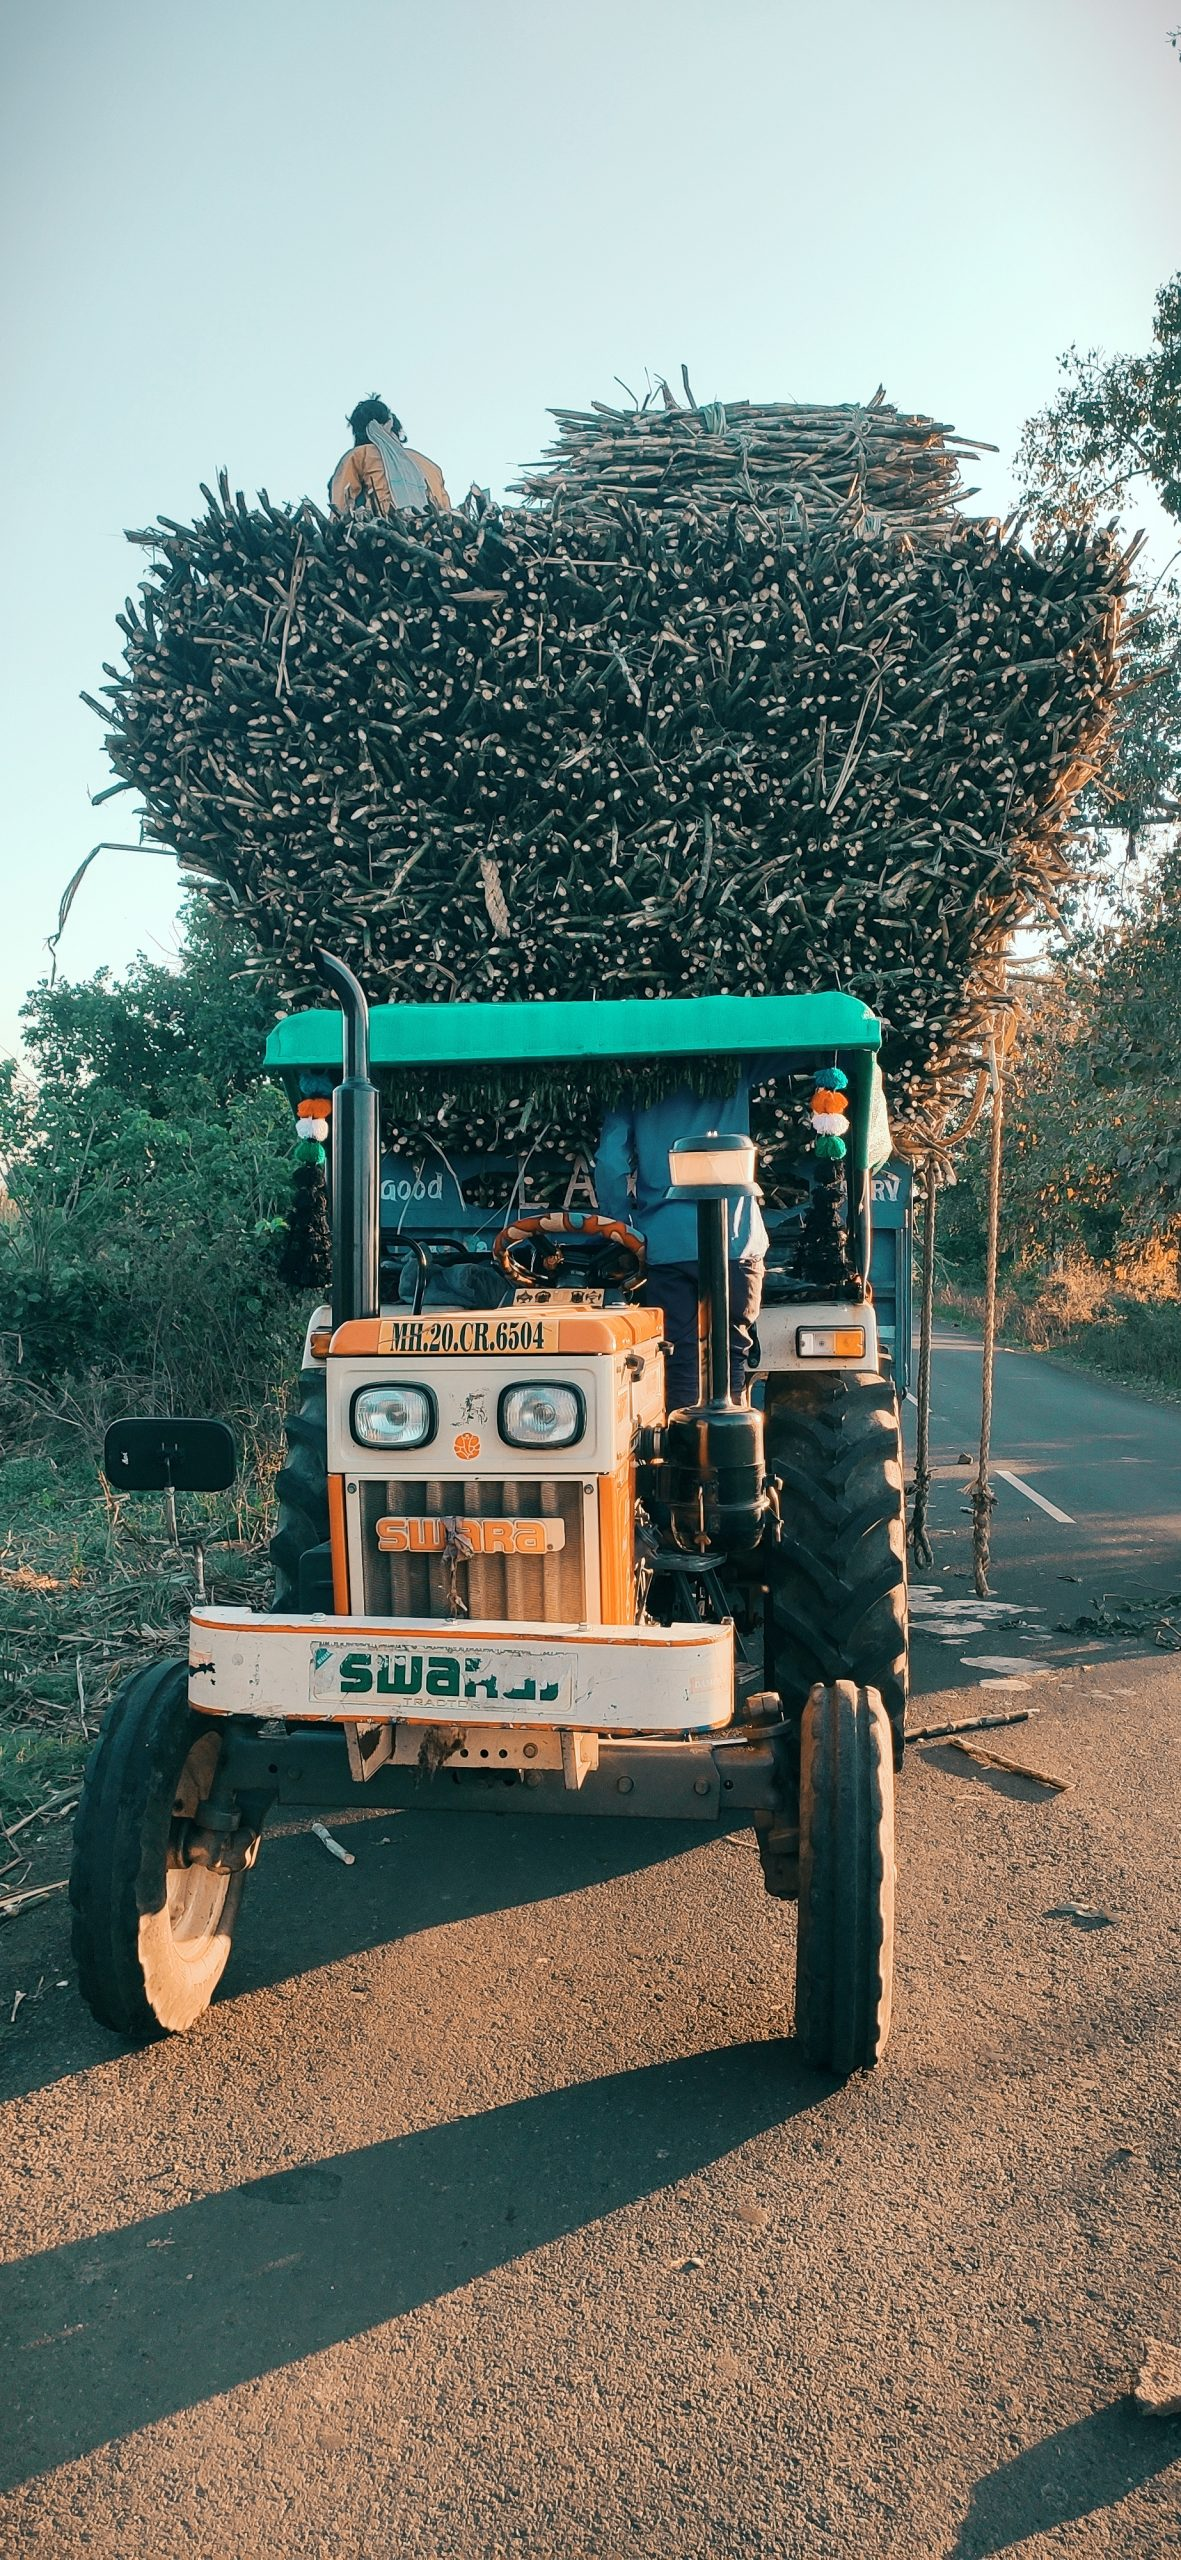 Tractor carrying sugarcanes